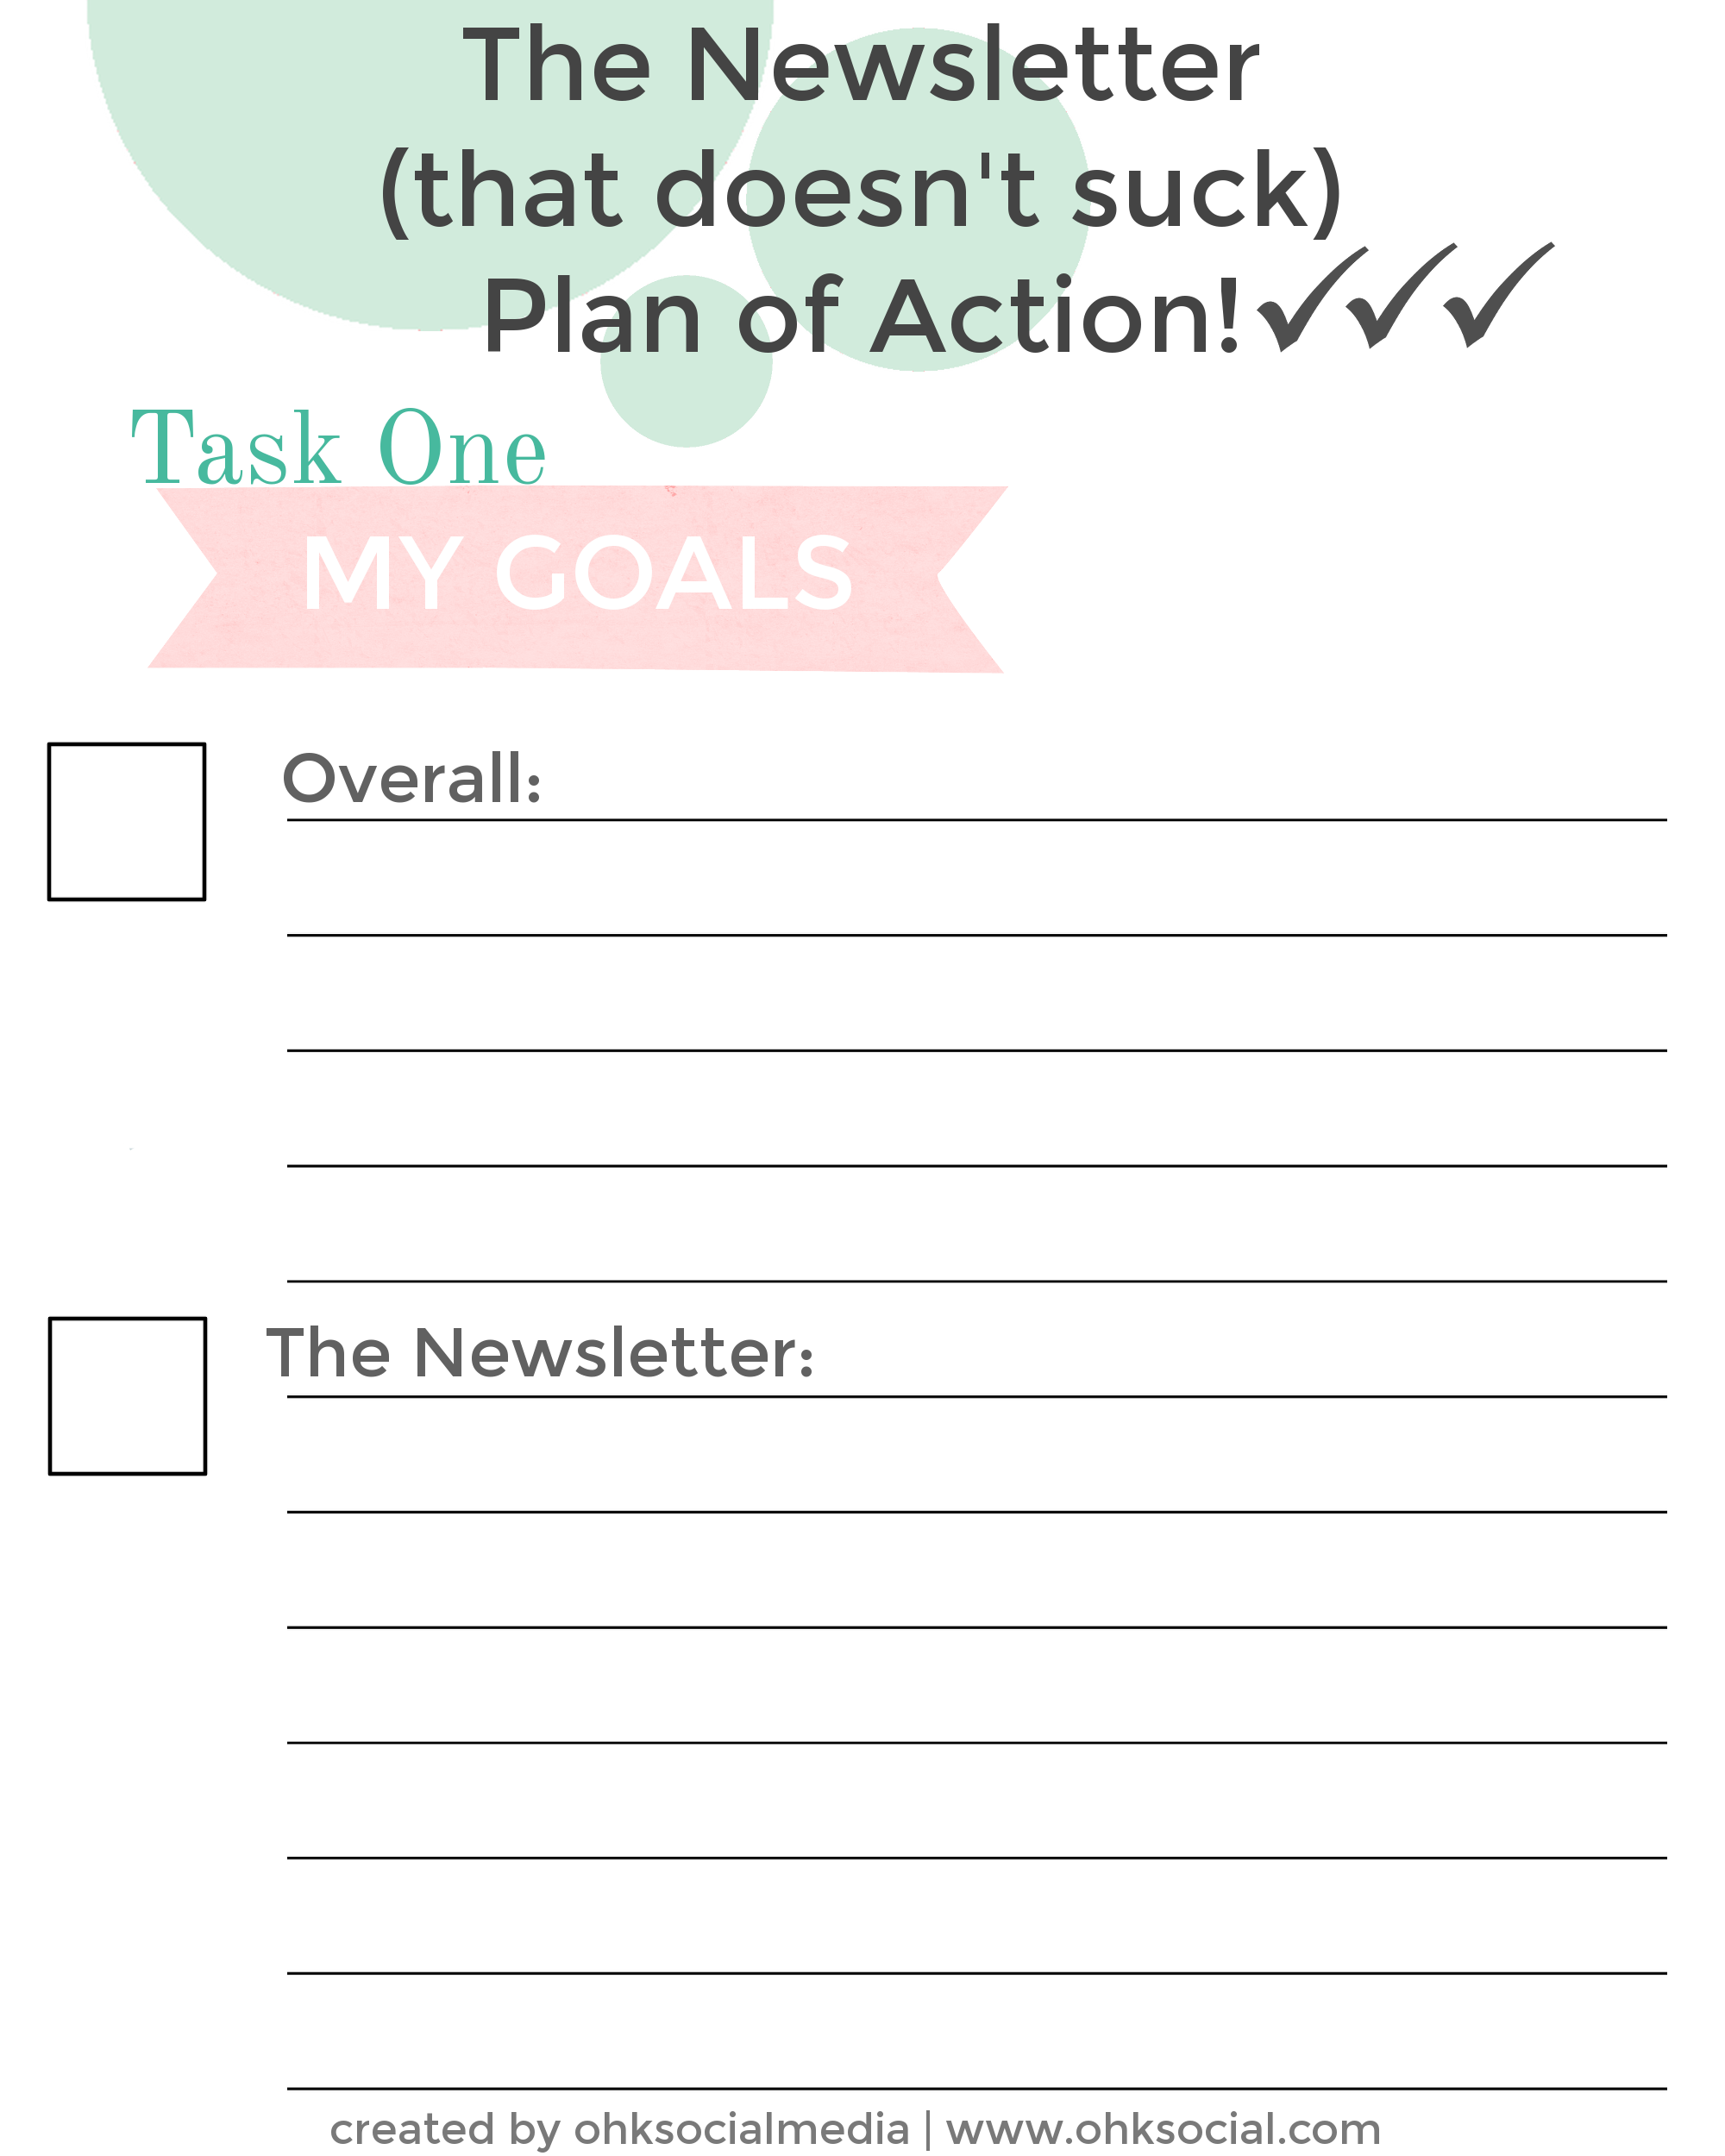 Free Newsletter Plan of Action Printables - Get more Subscribers! ohksocialmedia